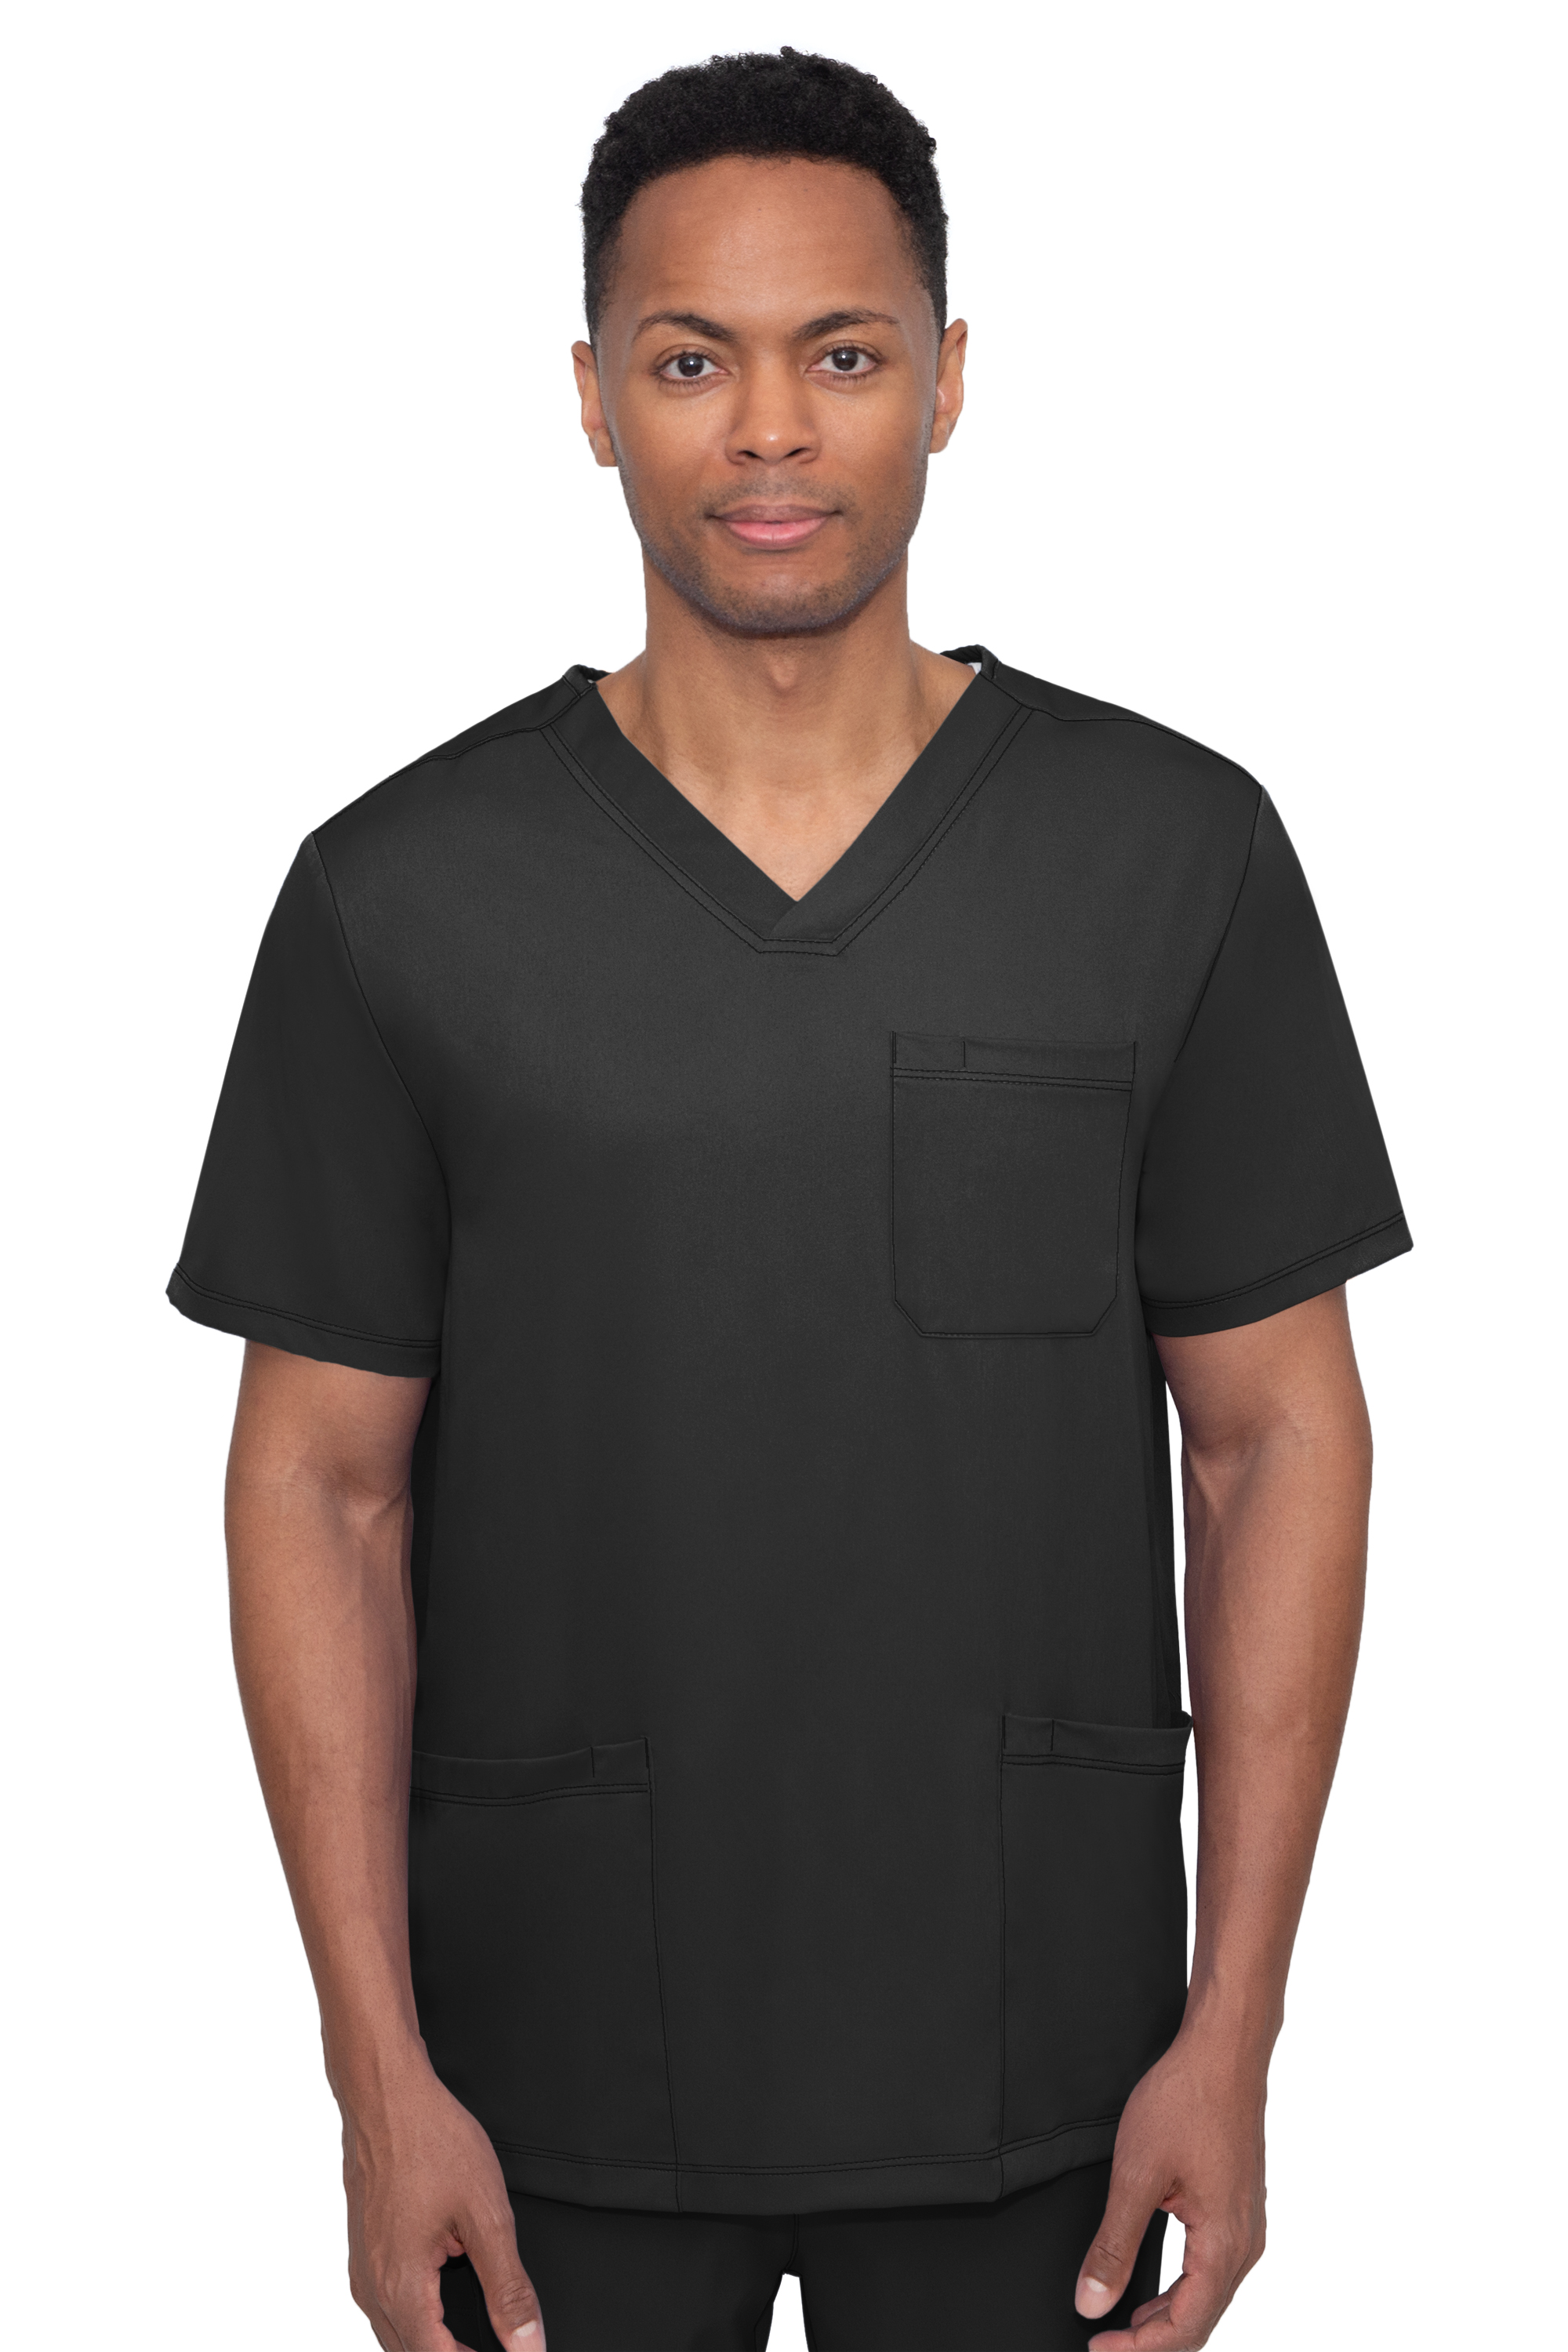 Mathew Top-V Neck Top With 4 Pockets & 1 Media Pocket-Hh Works